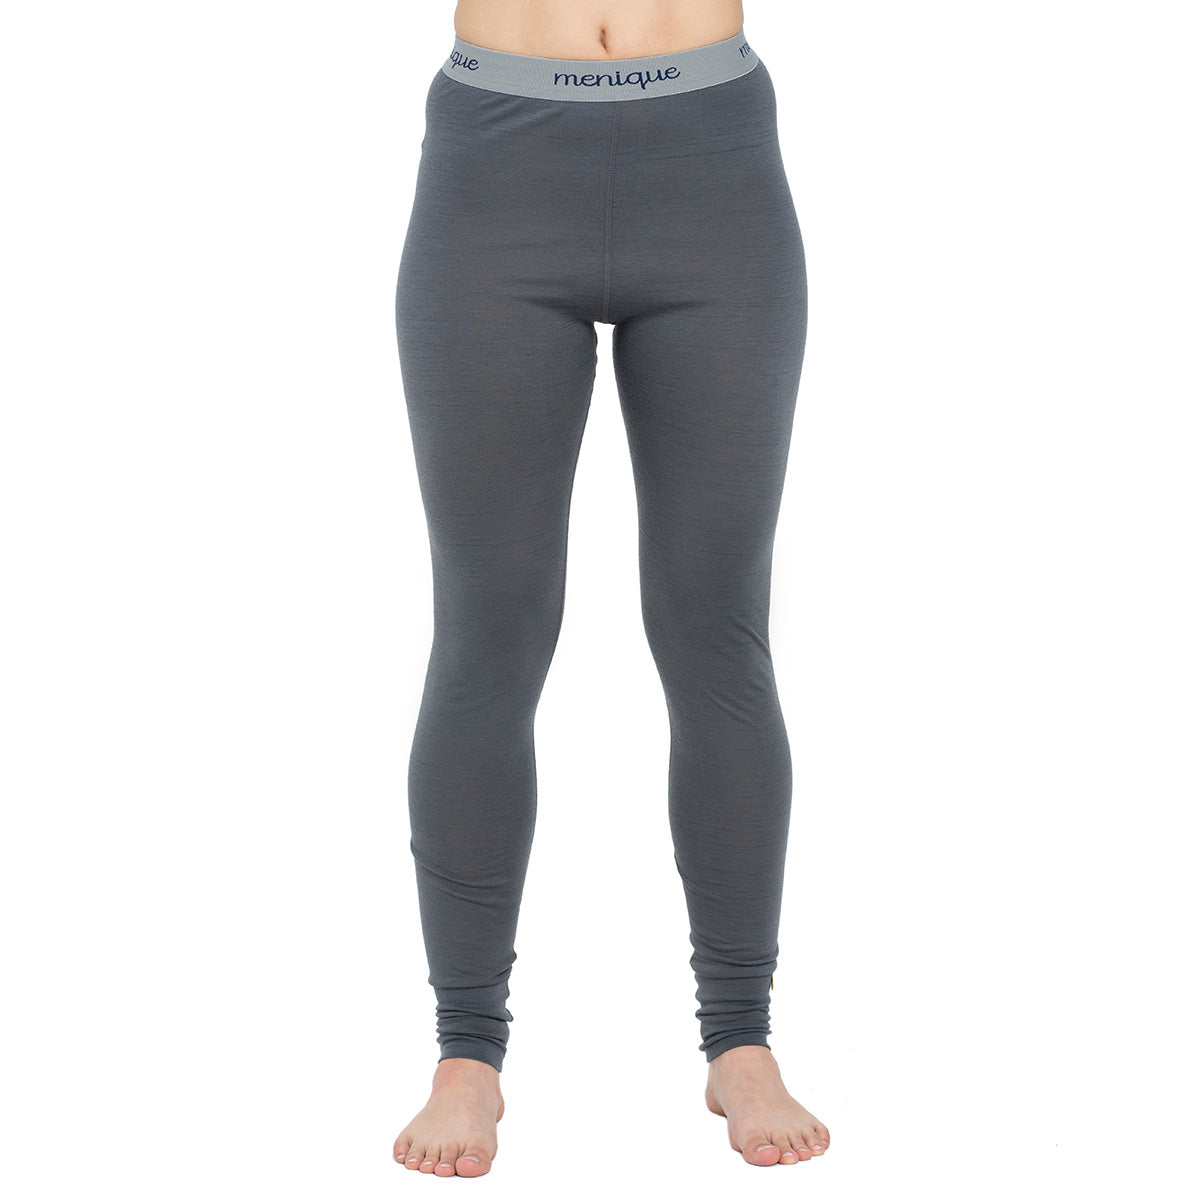 menique Women's Merino 160 Pants RB Perfect Grey Color